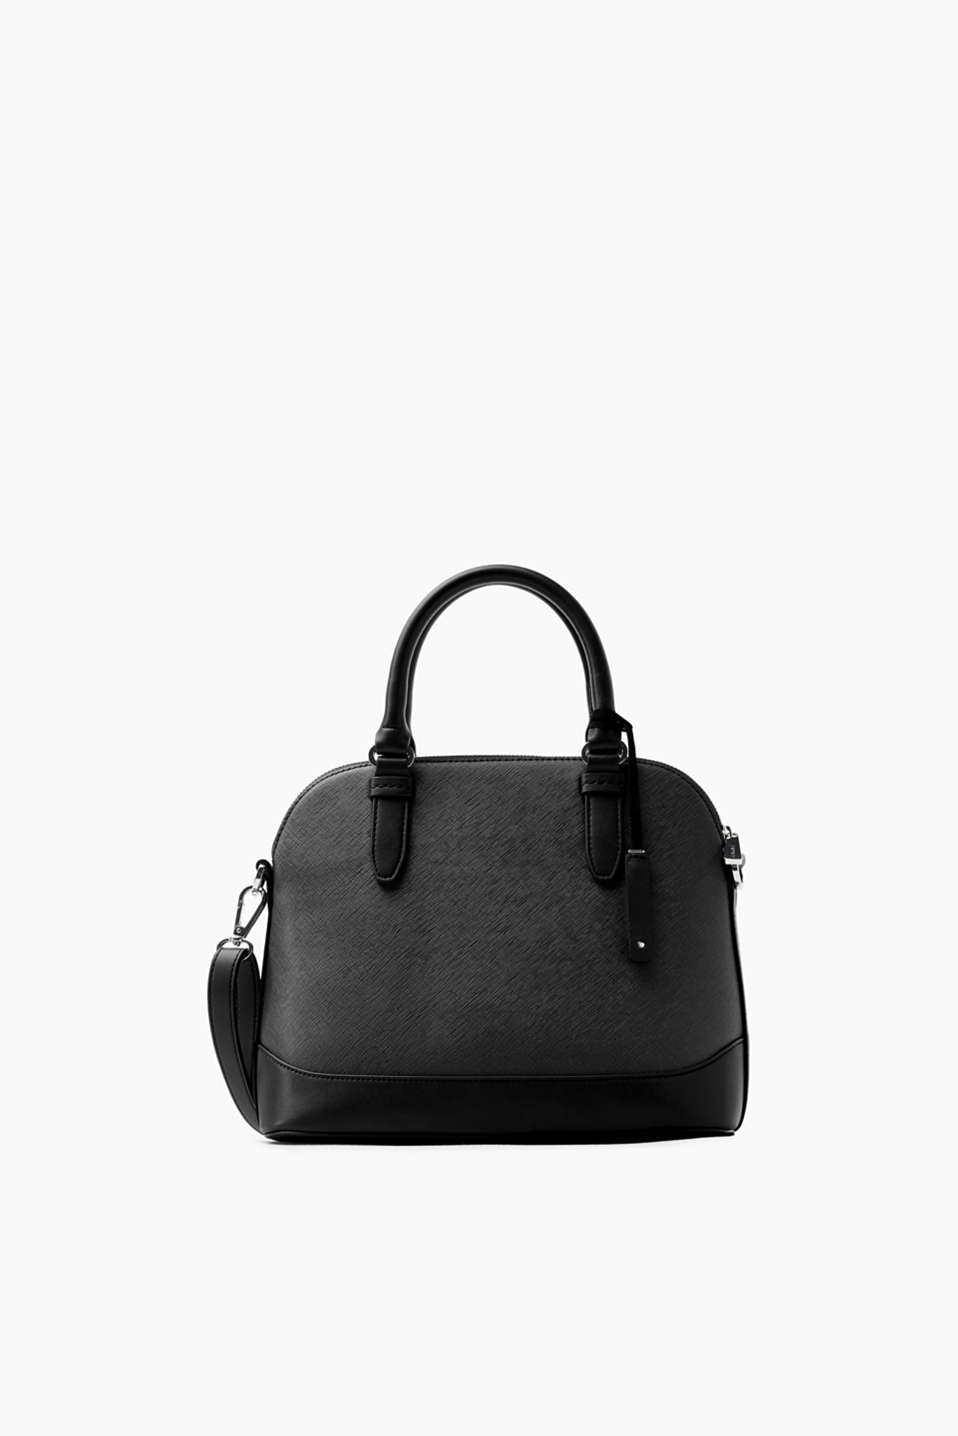 Esprit - City bag in textured faux leather